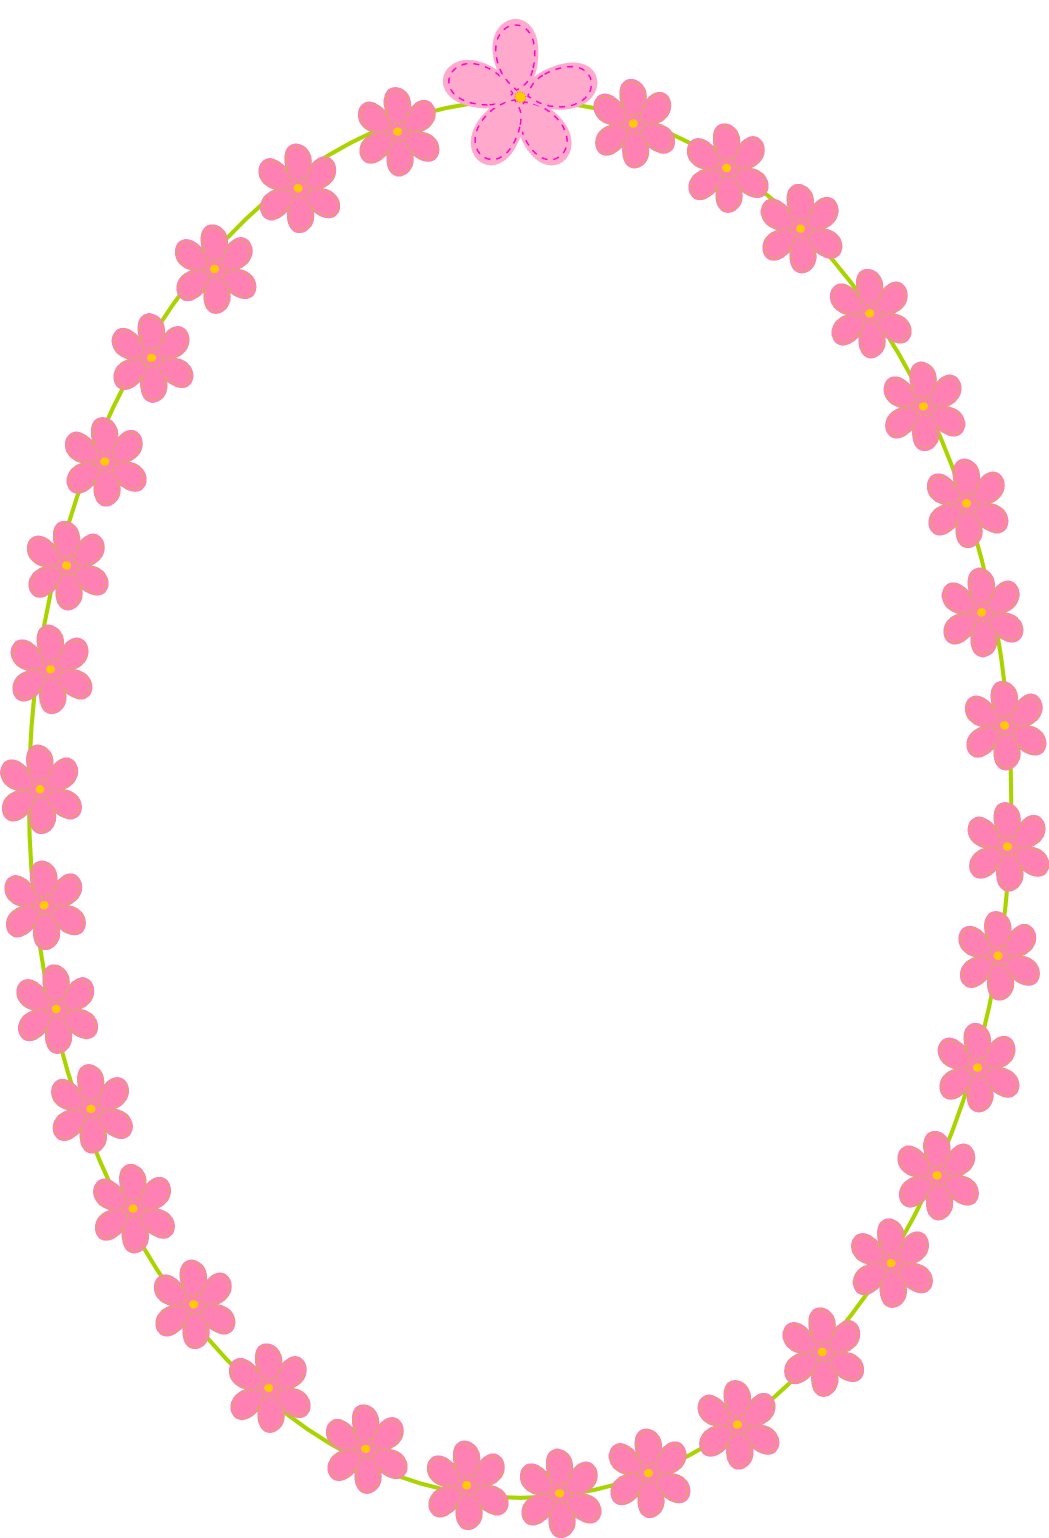 Pink snowflake border clipart clip royalty free download Free Digital Flower Frames Scrapbooking Paper And Stickers – Png ... clip royalty free download